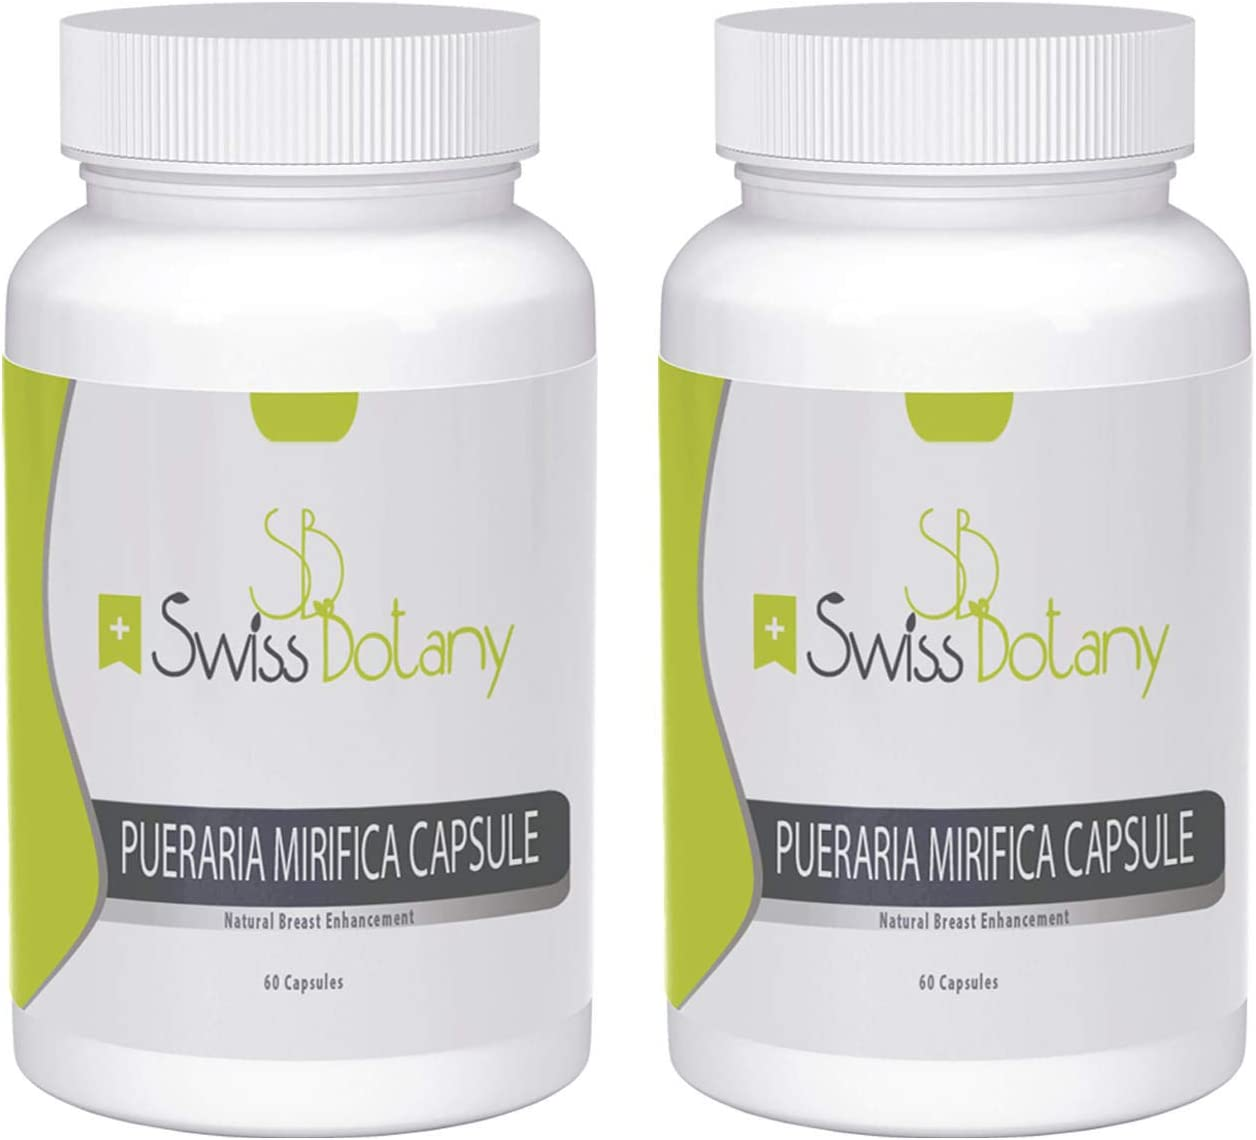 Swiss Botany Pueraria Mirifica Capsules for Natural Bust Enhancement, Restore Elasticity and Smoothness, Improve Skin, Hair and Nails, Take with Food, 120 Capsules, 2 Bottles